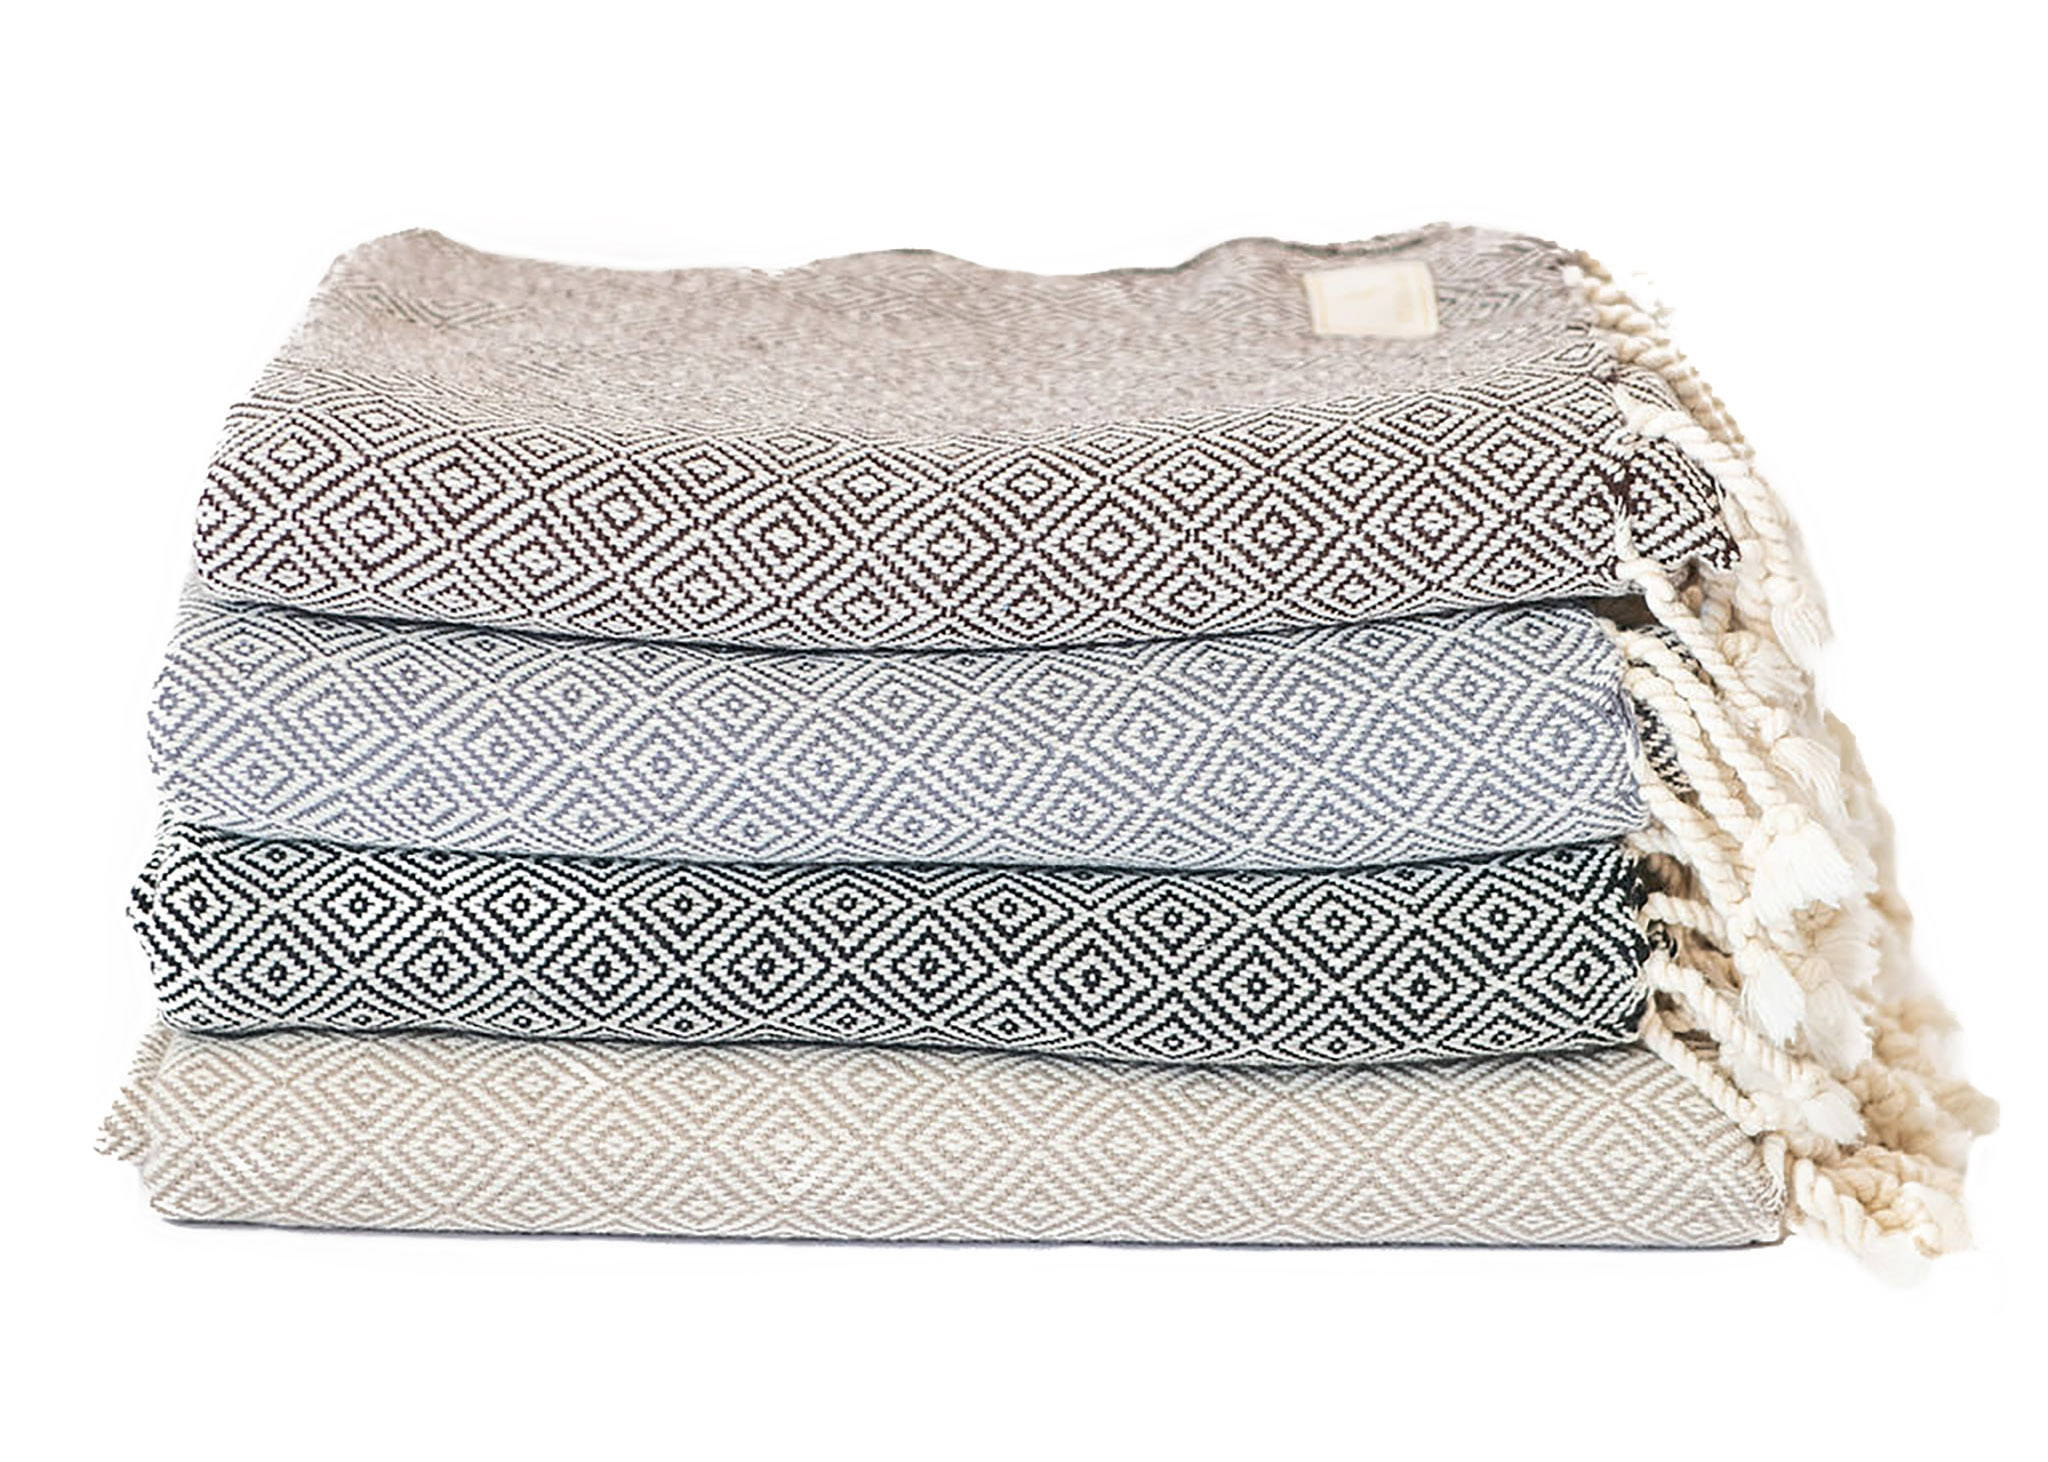 Handwoven organic cotton Turkish scarves, wraps, blankets in brown, charcoal, black & taupe - Stick & Ball